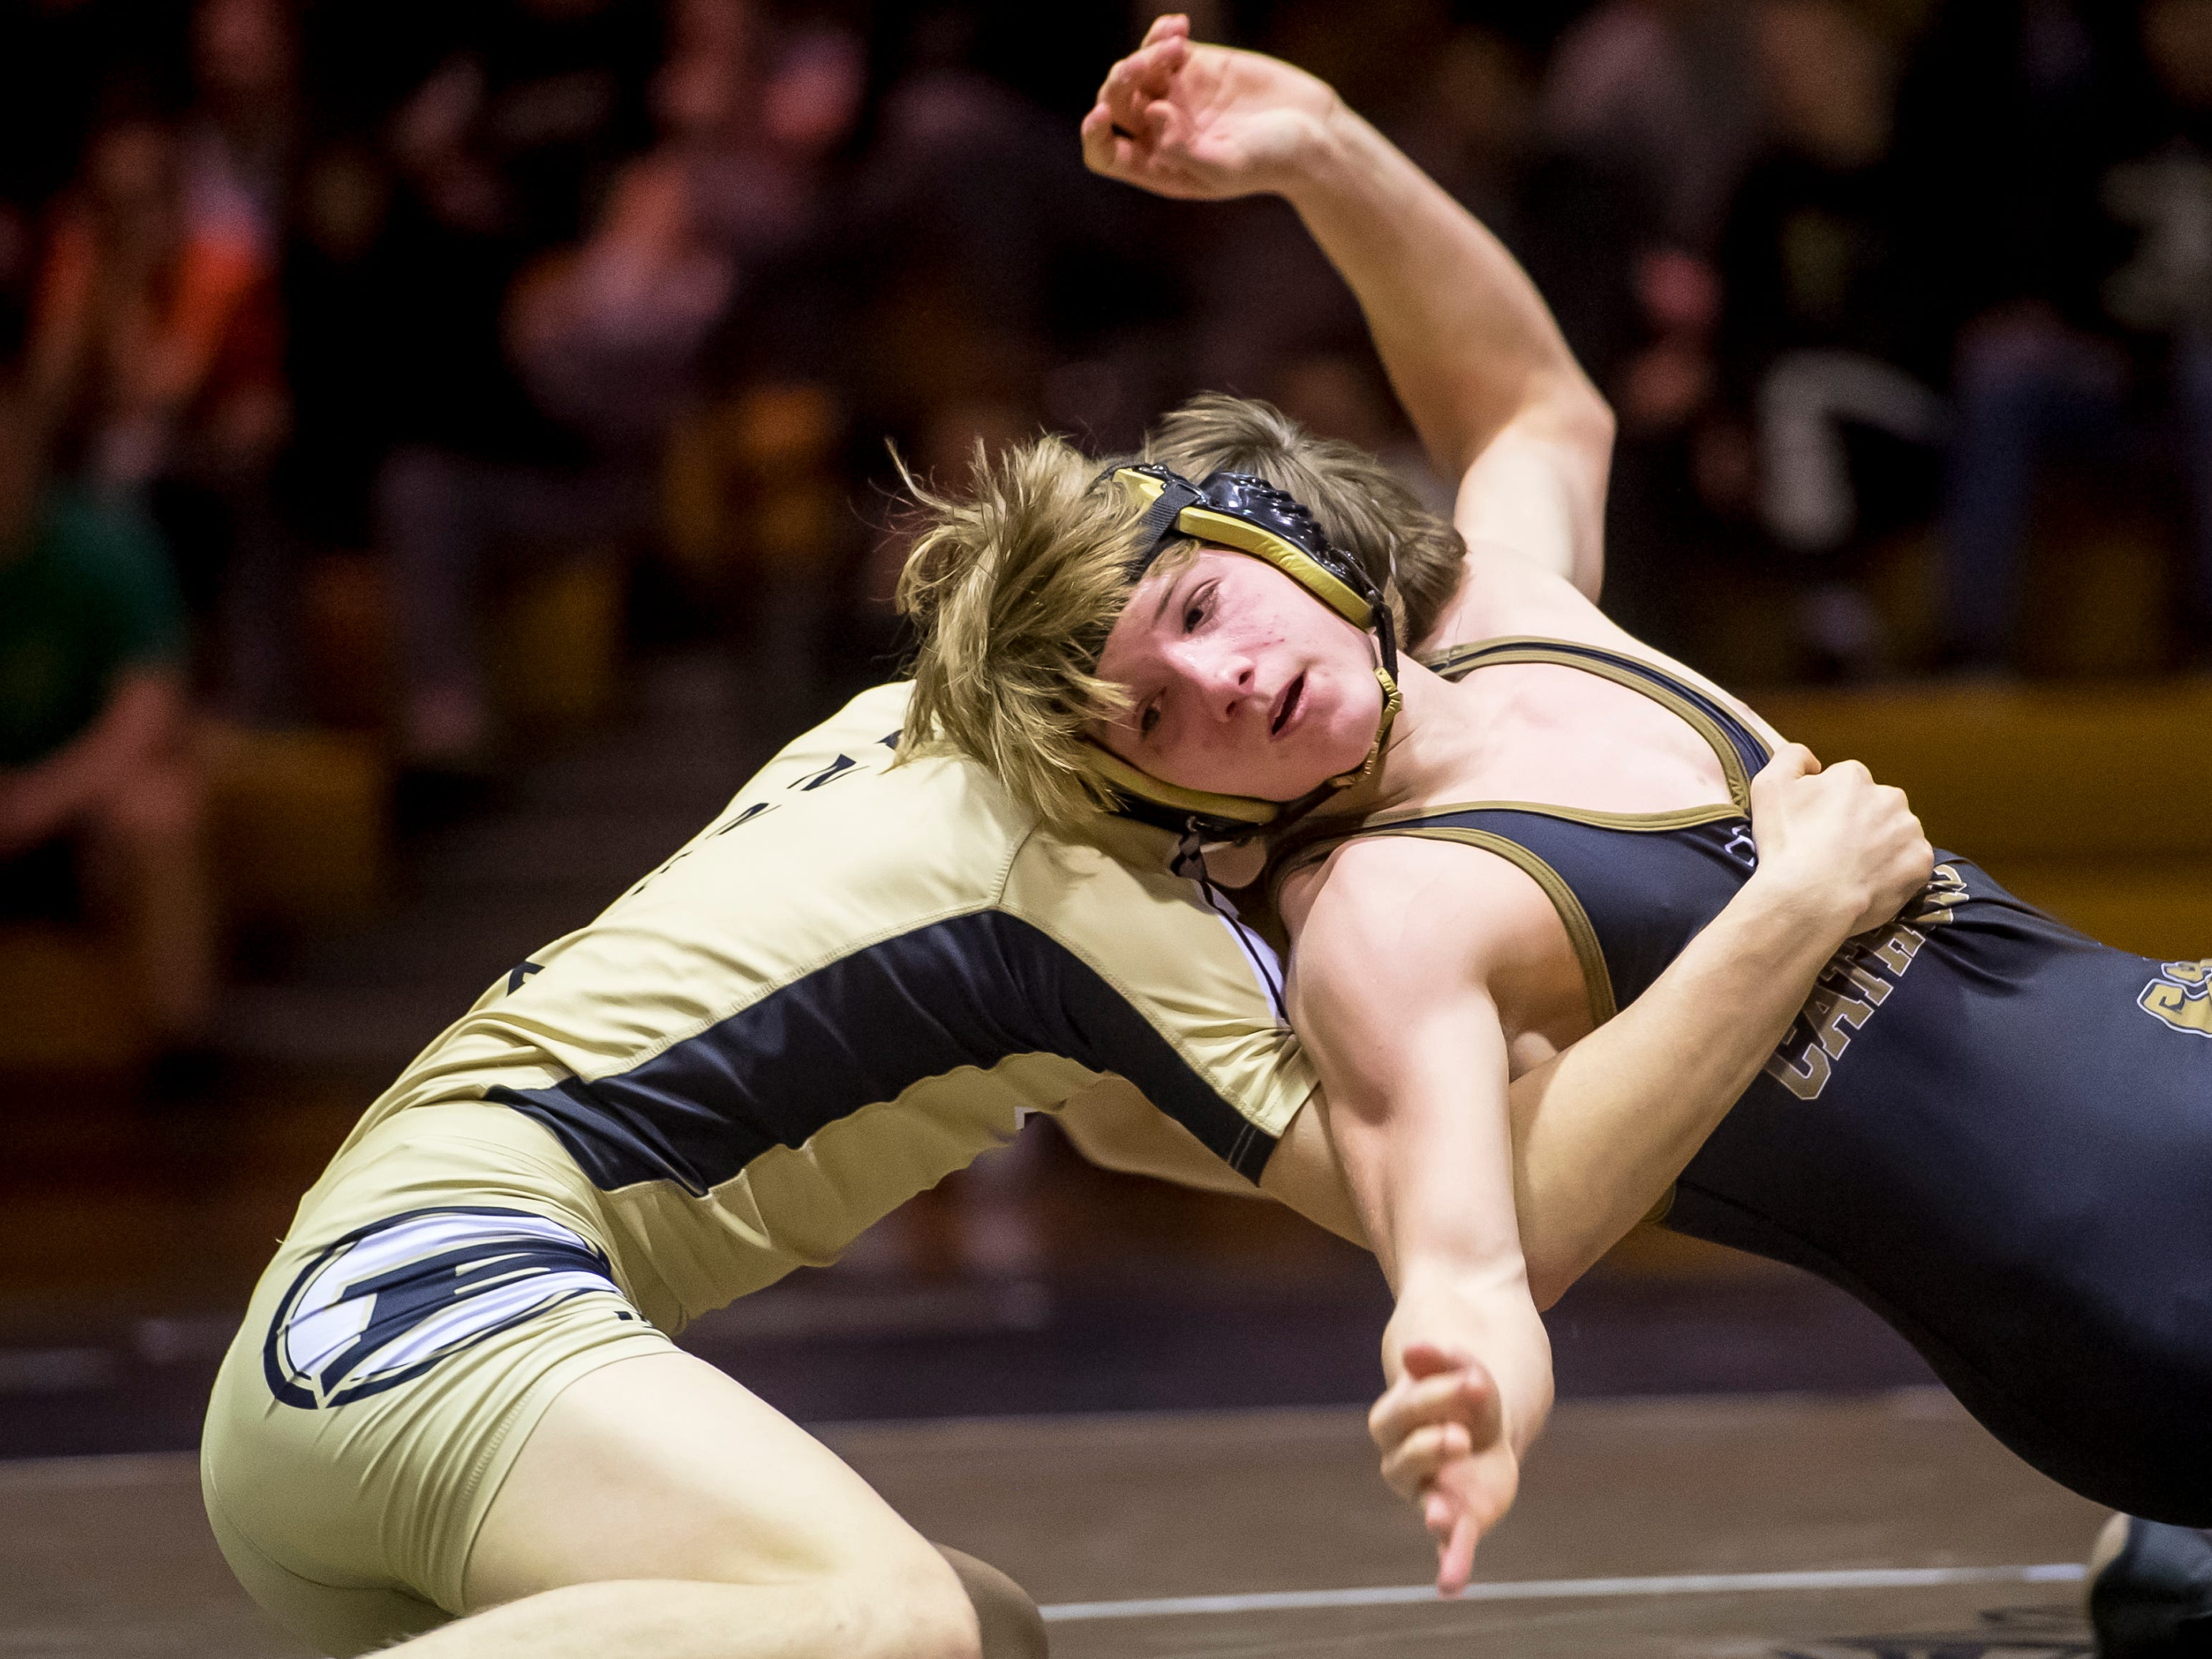 Biglerville's Eli Tuckey, left, wrestles Delone Catholic's Tate Neiderer in the 145-pound bout at Delone Catholic High School on December 19, 2018. Tuckey won by fall as the Canners won 51-21.